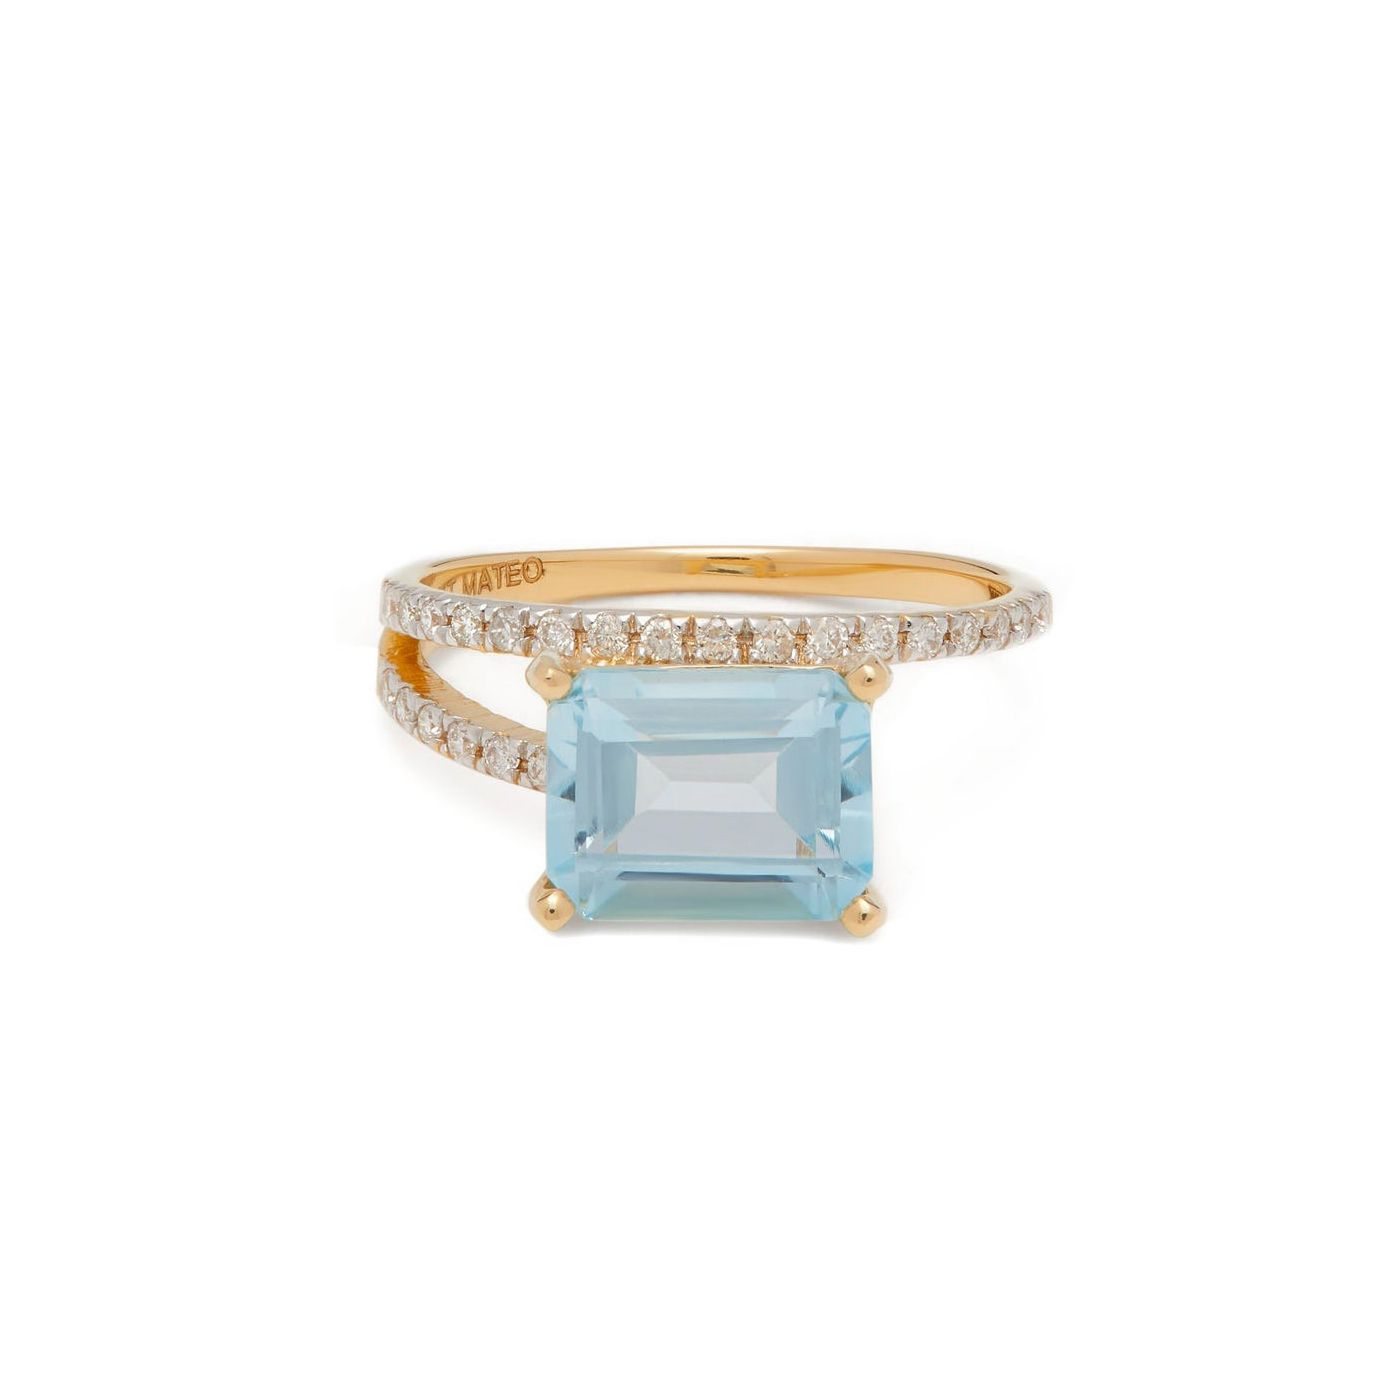 Mateo Point of Focus Diamond Topaz and 14K Gold Ring